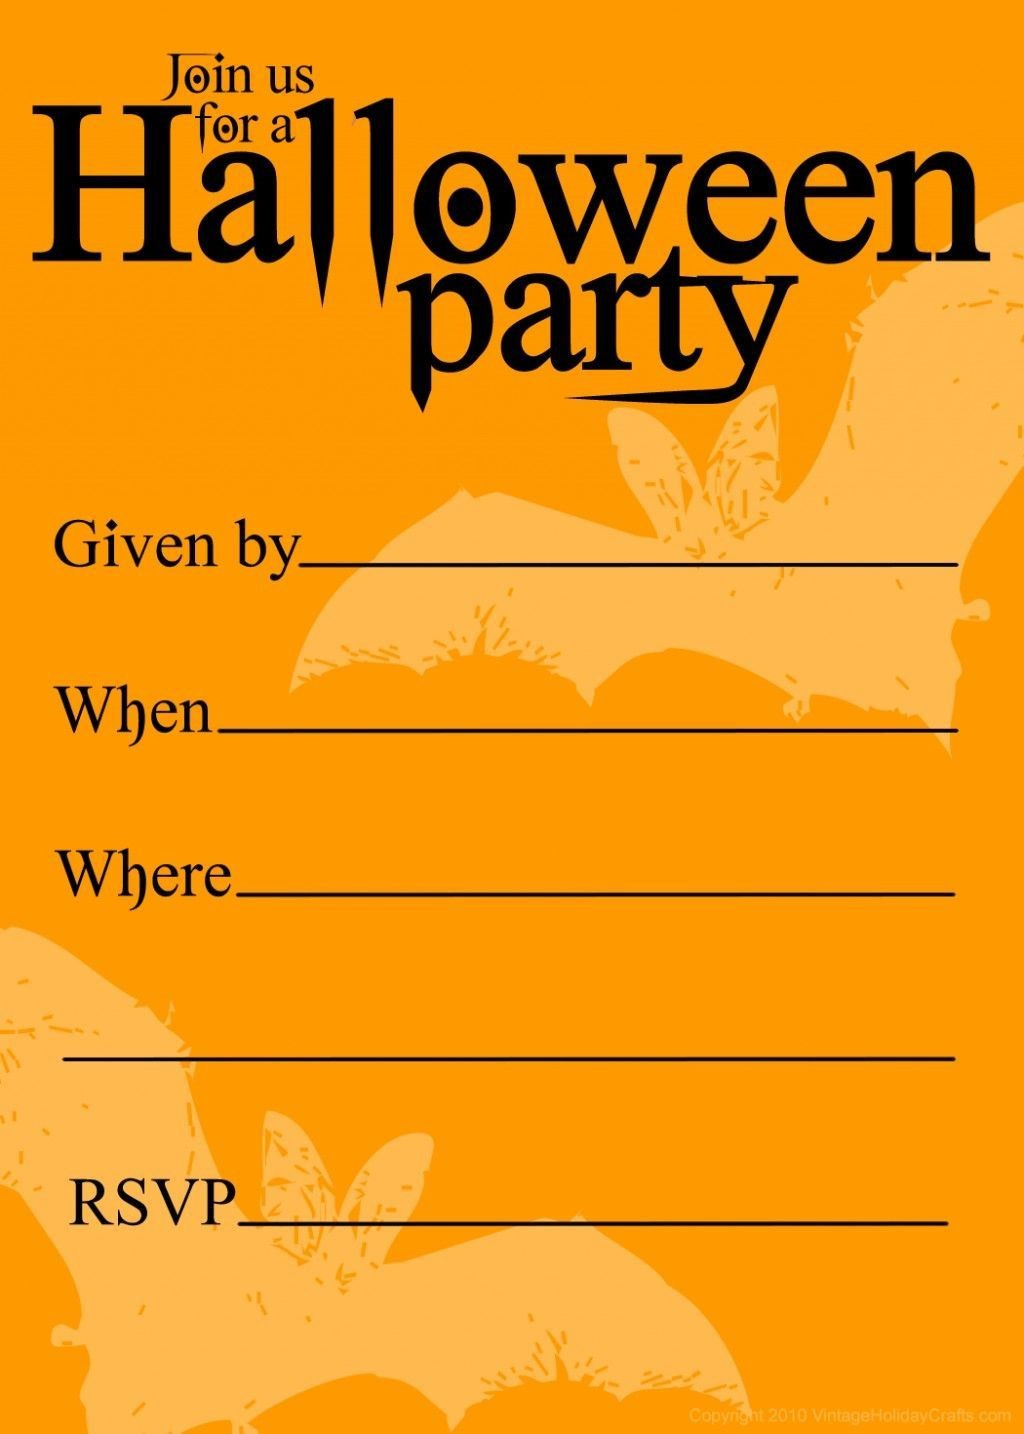 001 Dreaded Halloween Party Invitation Template Picture  Templates Scary SpookyLarge